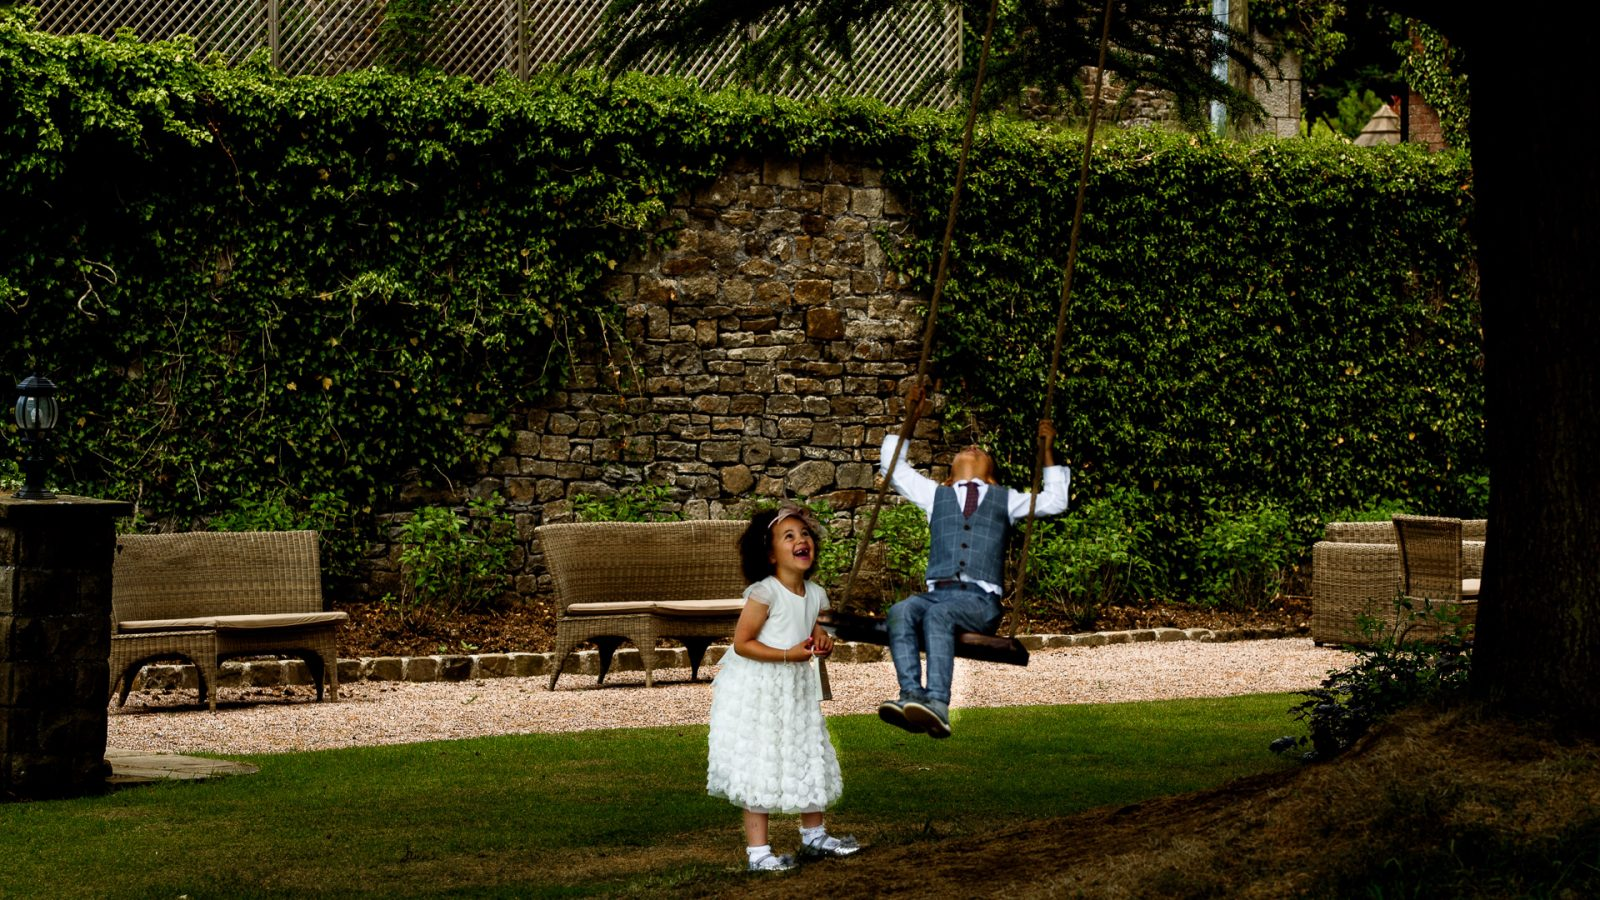 best-wedding-photos-2017-kimberley-and-joseph-bride-and-bride-grooms-chidren-playing